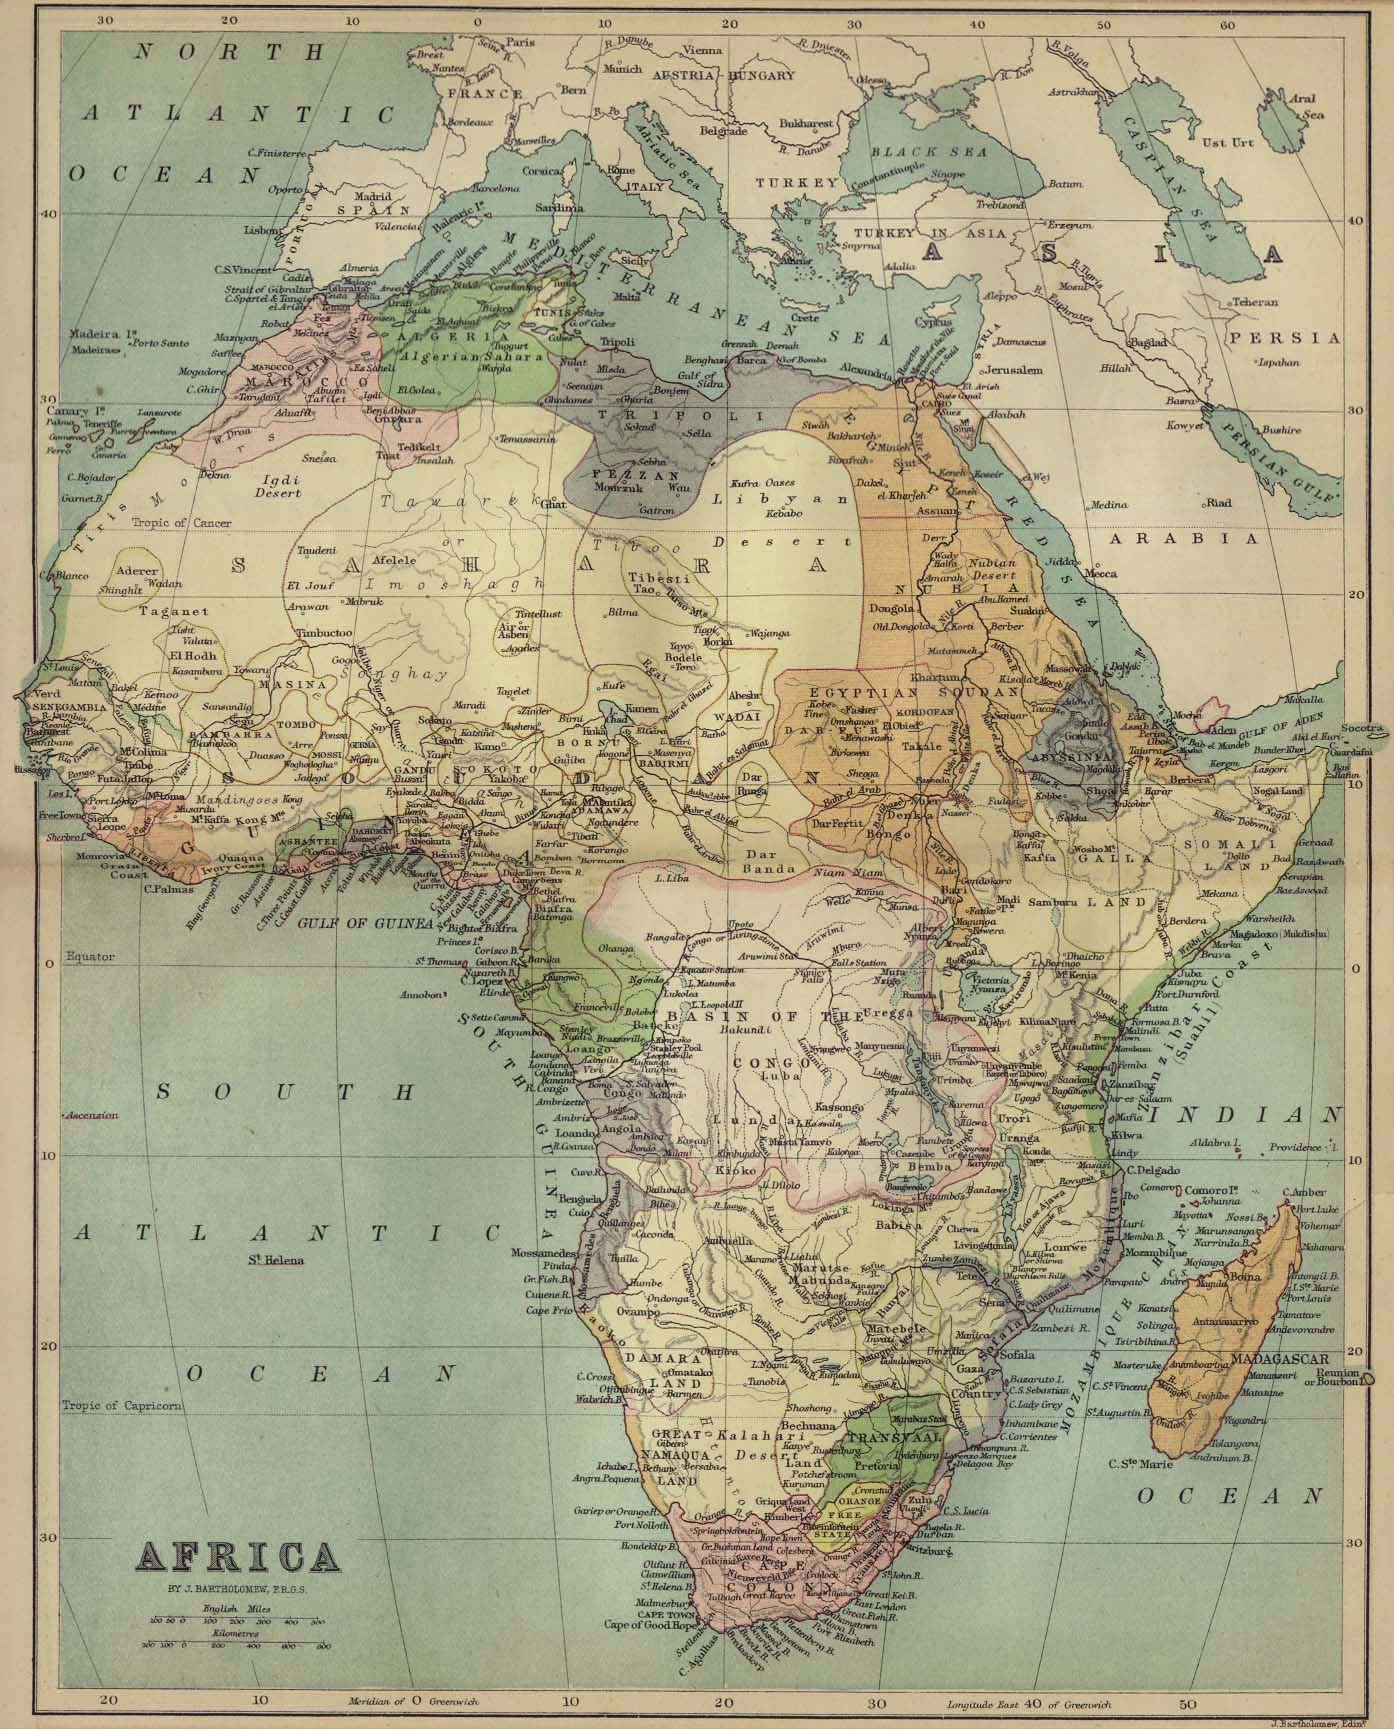 Map Of Africa In 1800.Africa Historical Maps Perry Castaneda Map Collection Ut Library